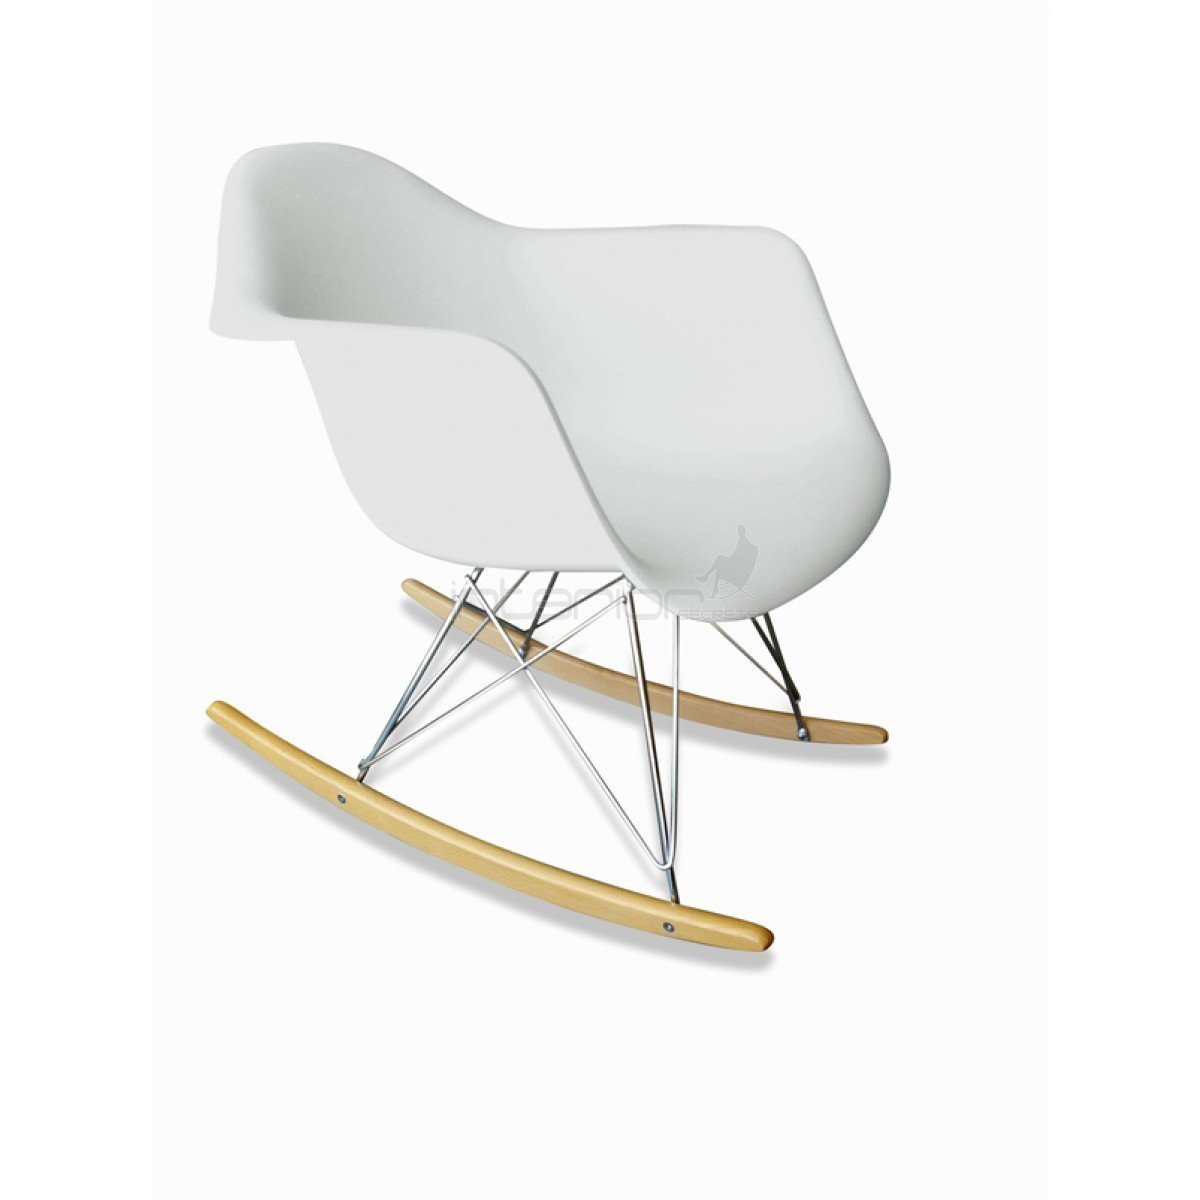 9 eames rocker chair price simple living room chairs recliners amp rocking auction - Eames rocker replica ...